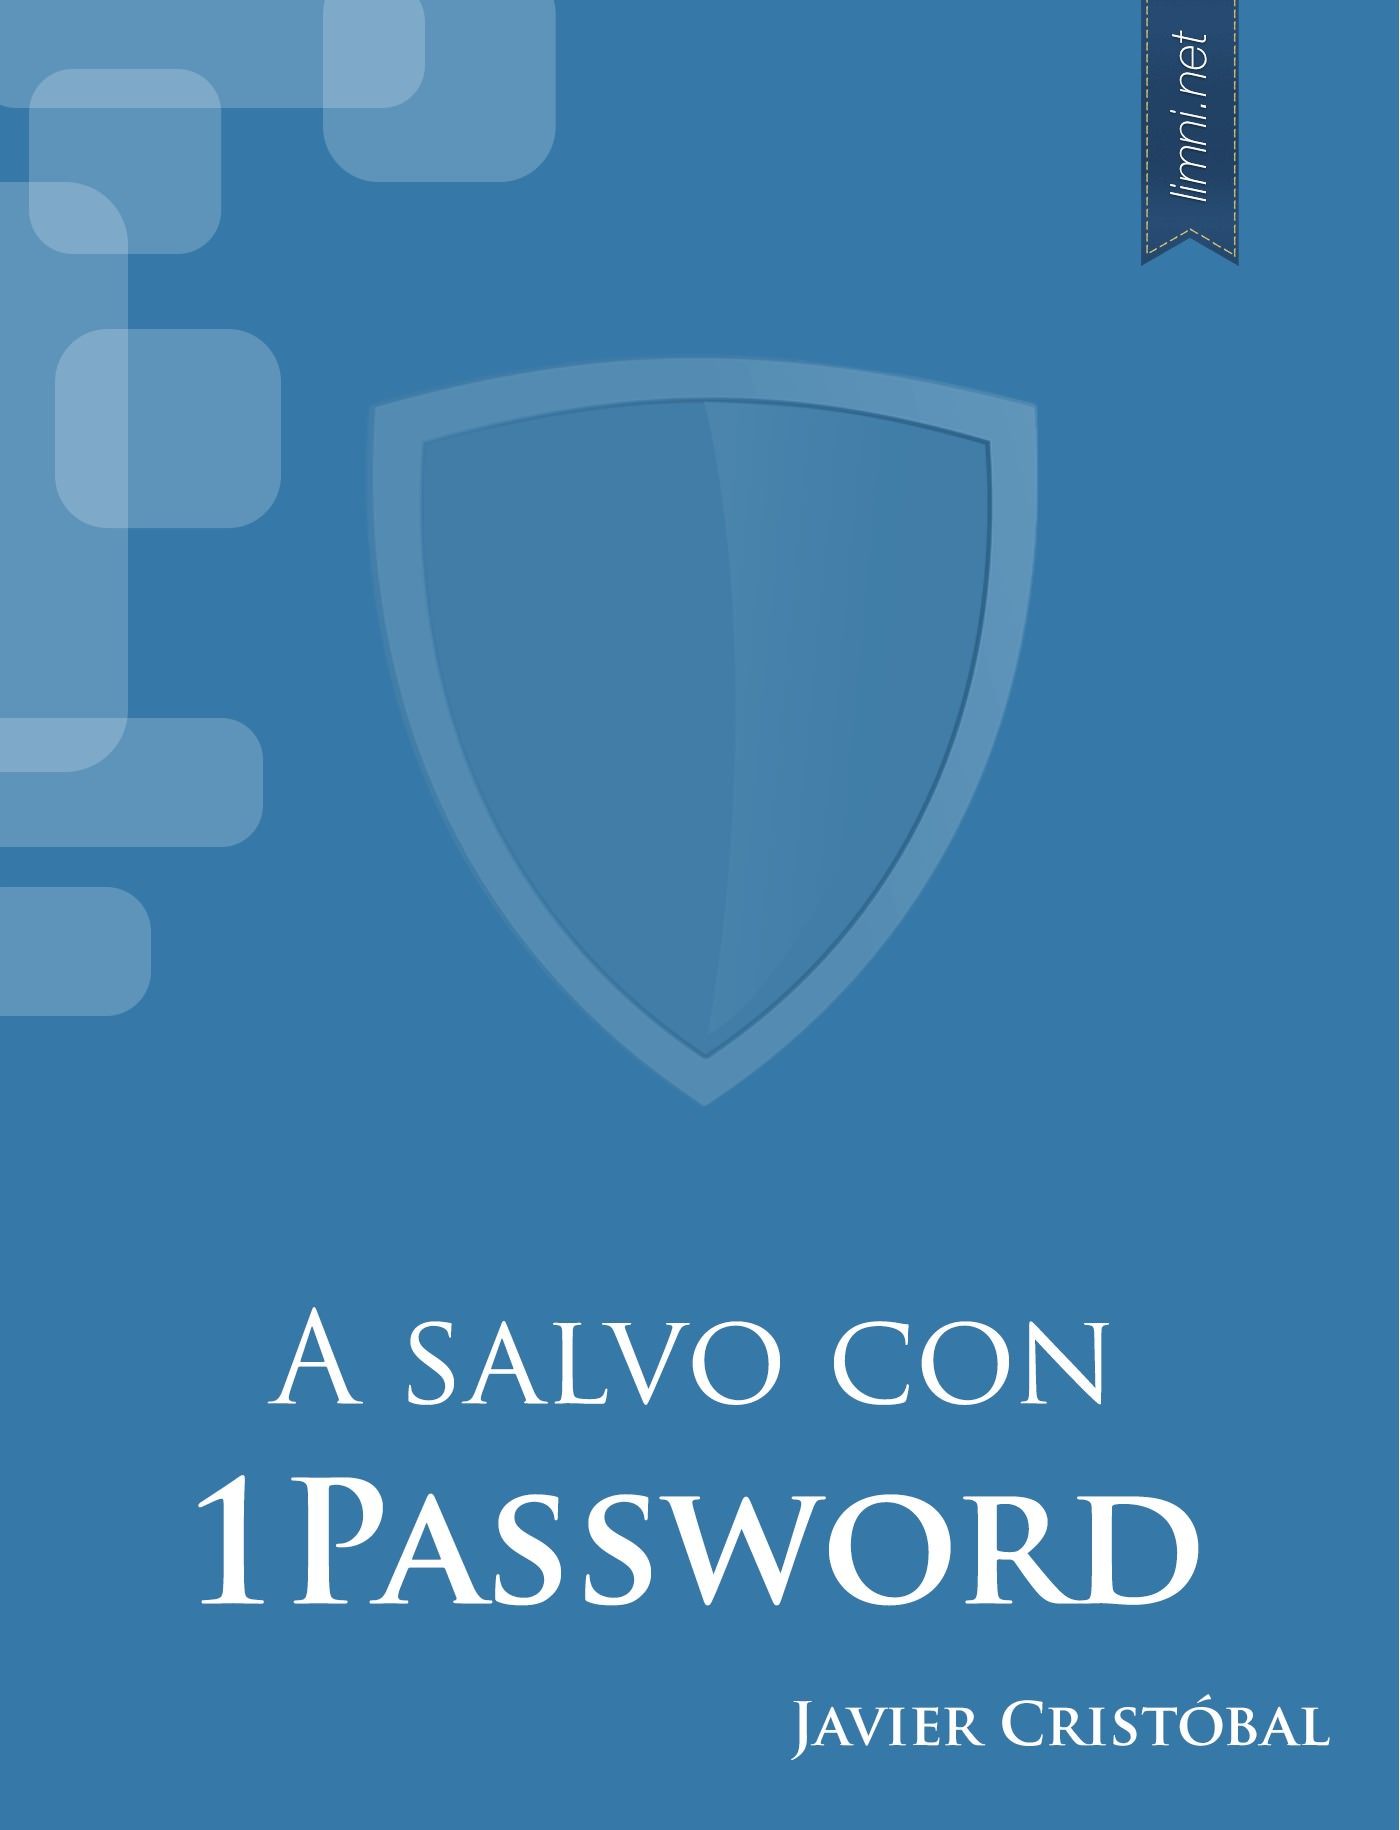 A salvo con 1Password cover